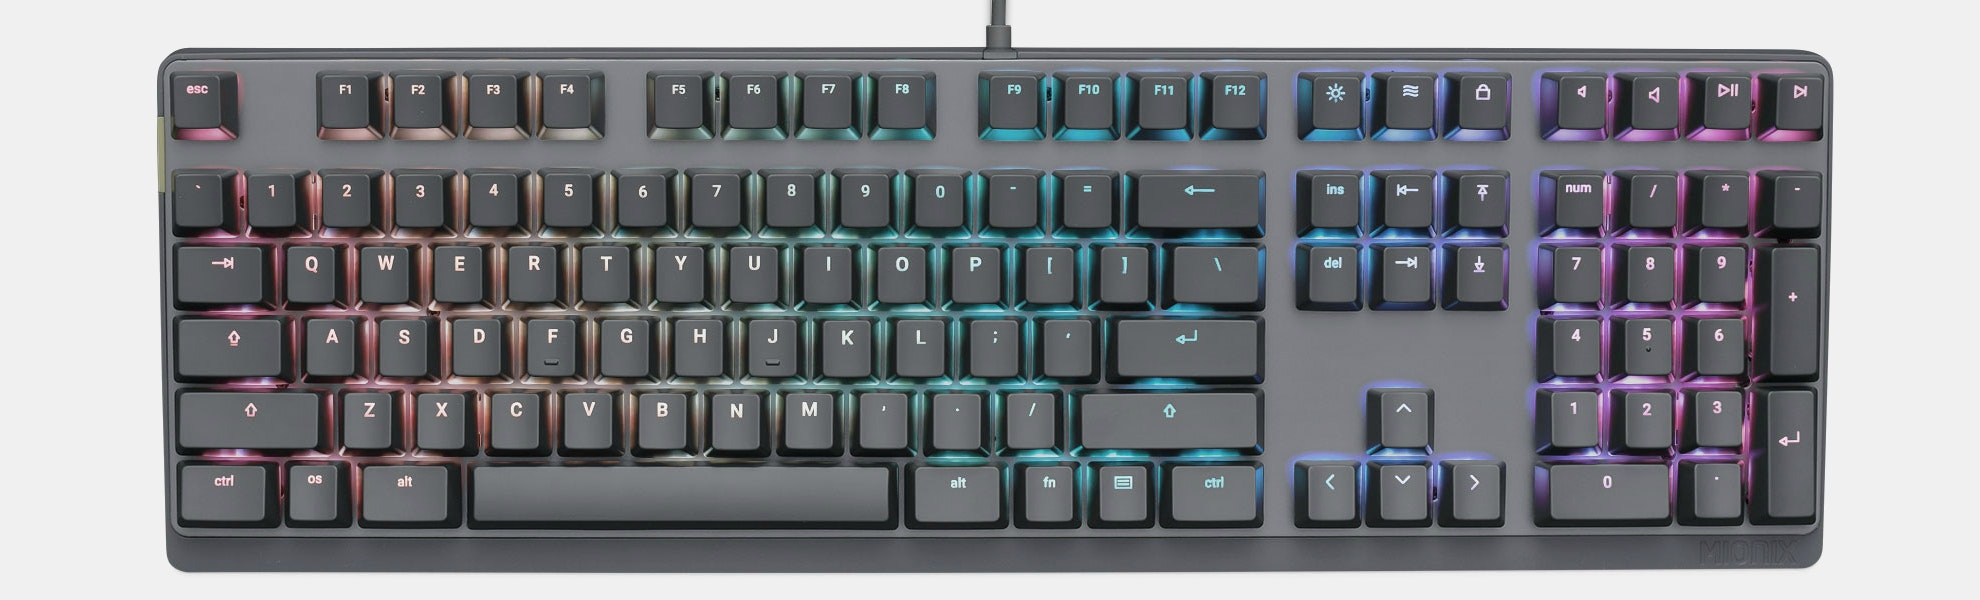 Mionix Wei Mechanical RGB Keyboard